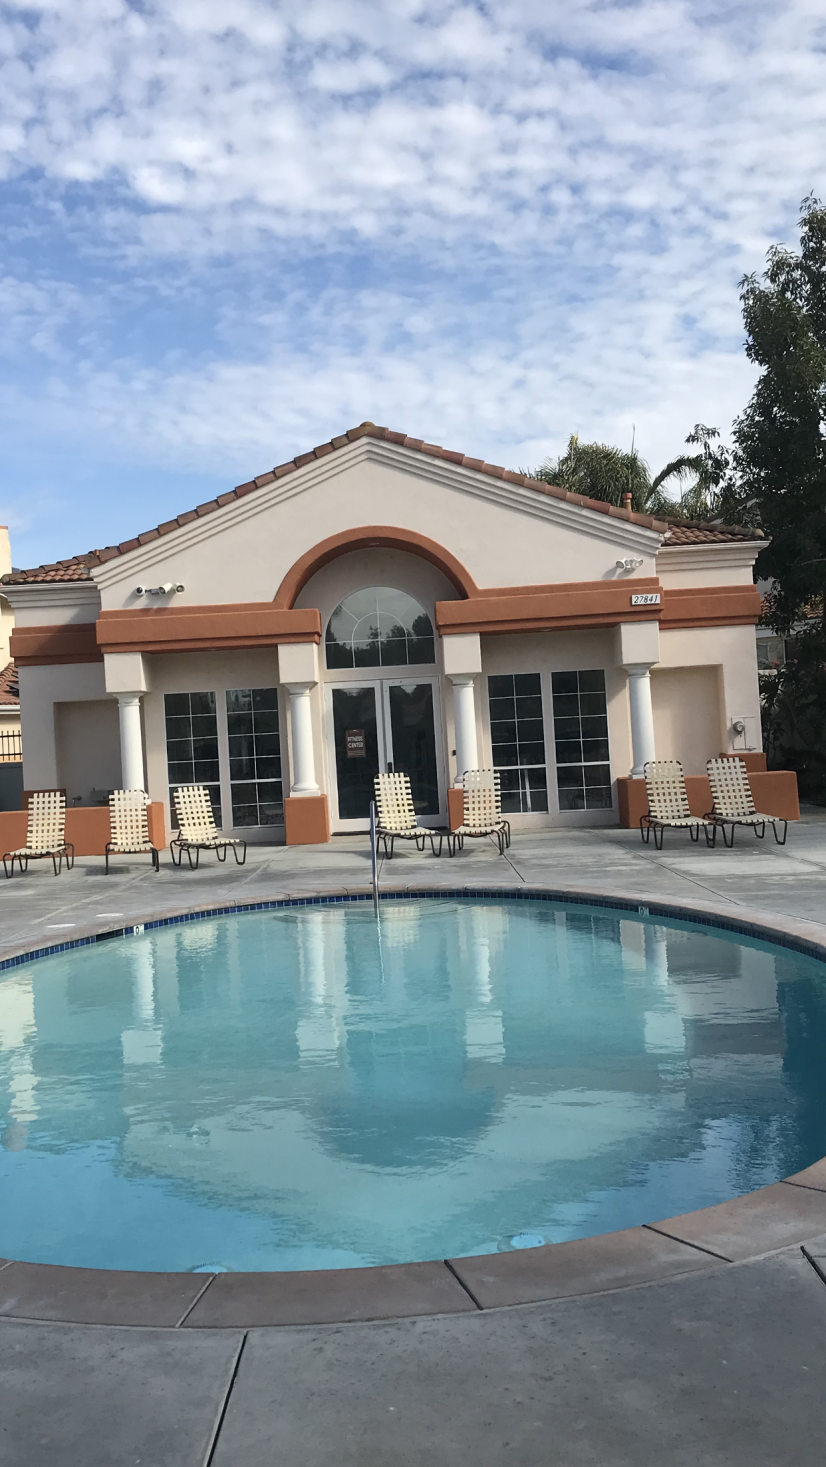 Pool, Spa, Fitness Center steps from house!